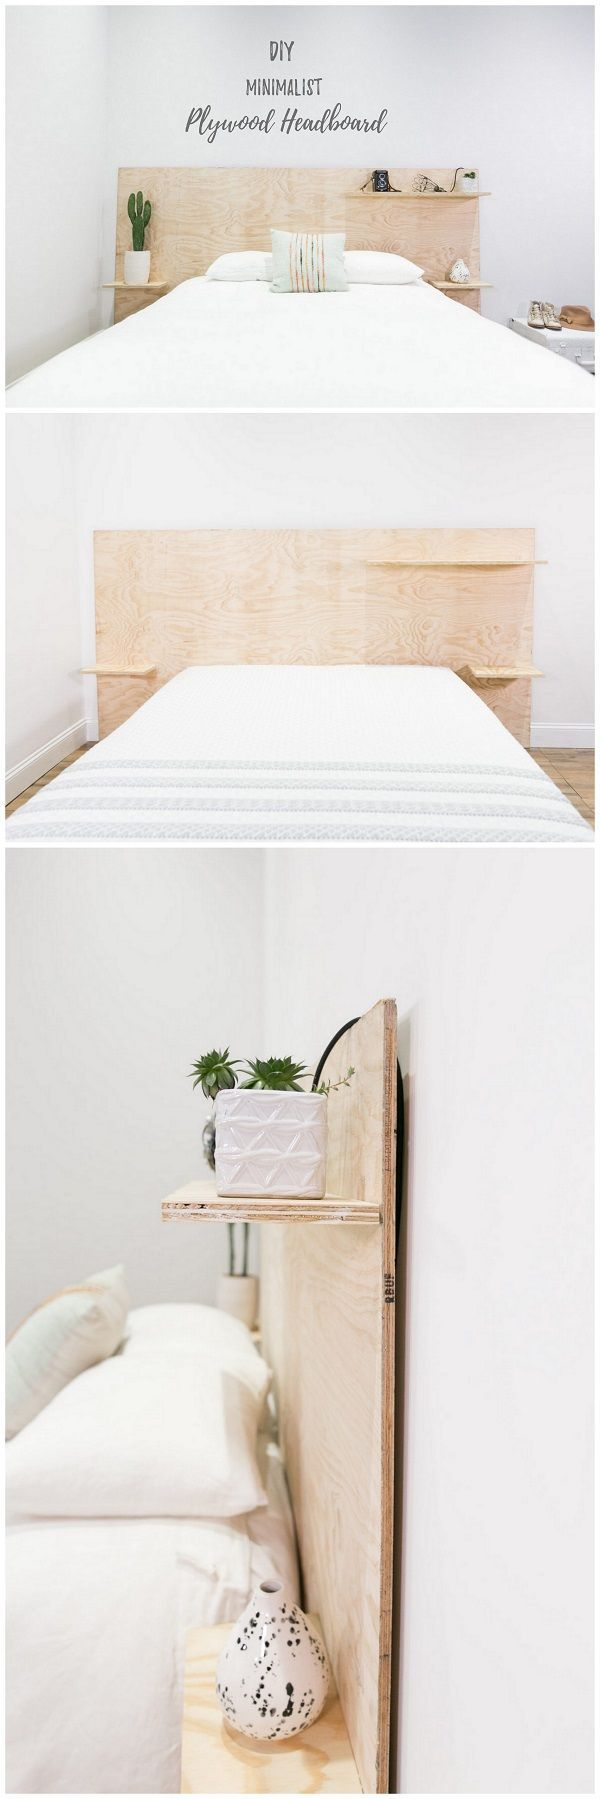 Check out this easy idea on how to make a diy minimalist plywood